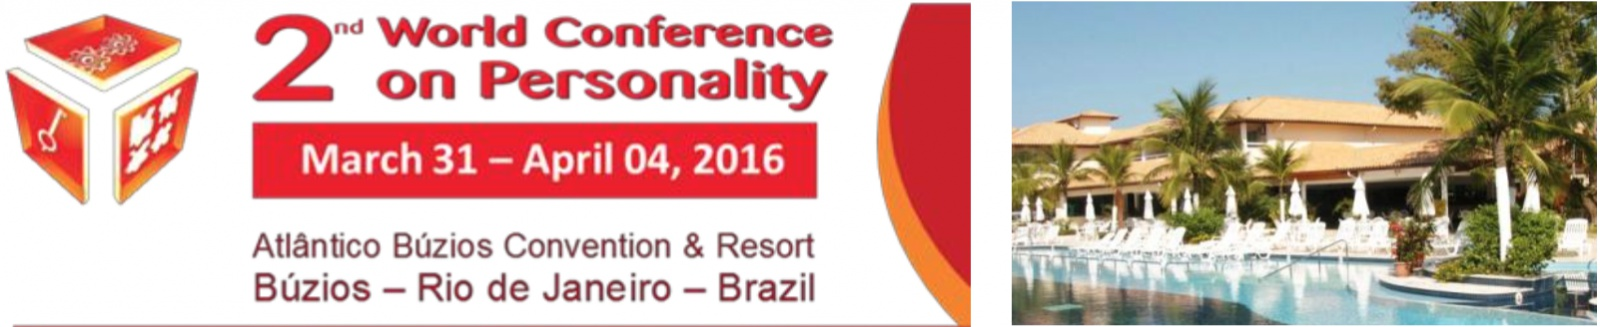 Banner 2nd World Conference on Personality